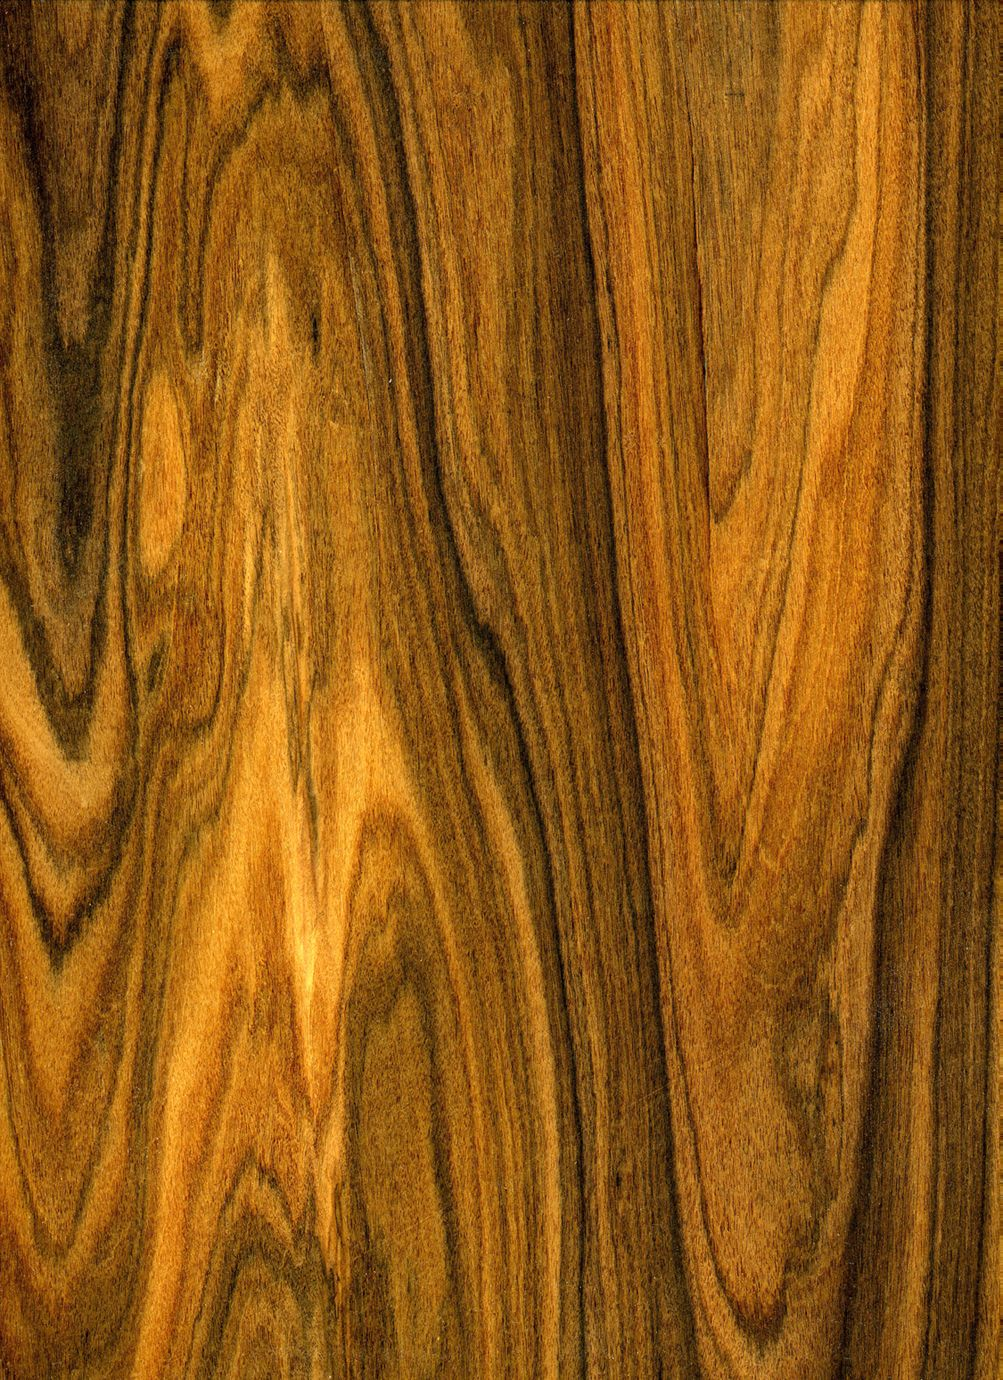 Wurzelholz Textur Exotic Lumber Inc Stocks Over 130 Species Of Exotic Wood And